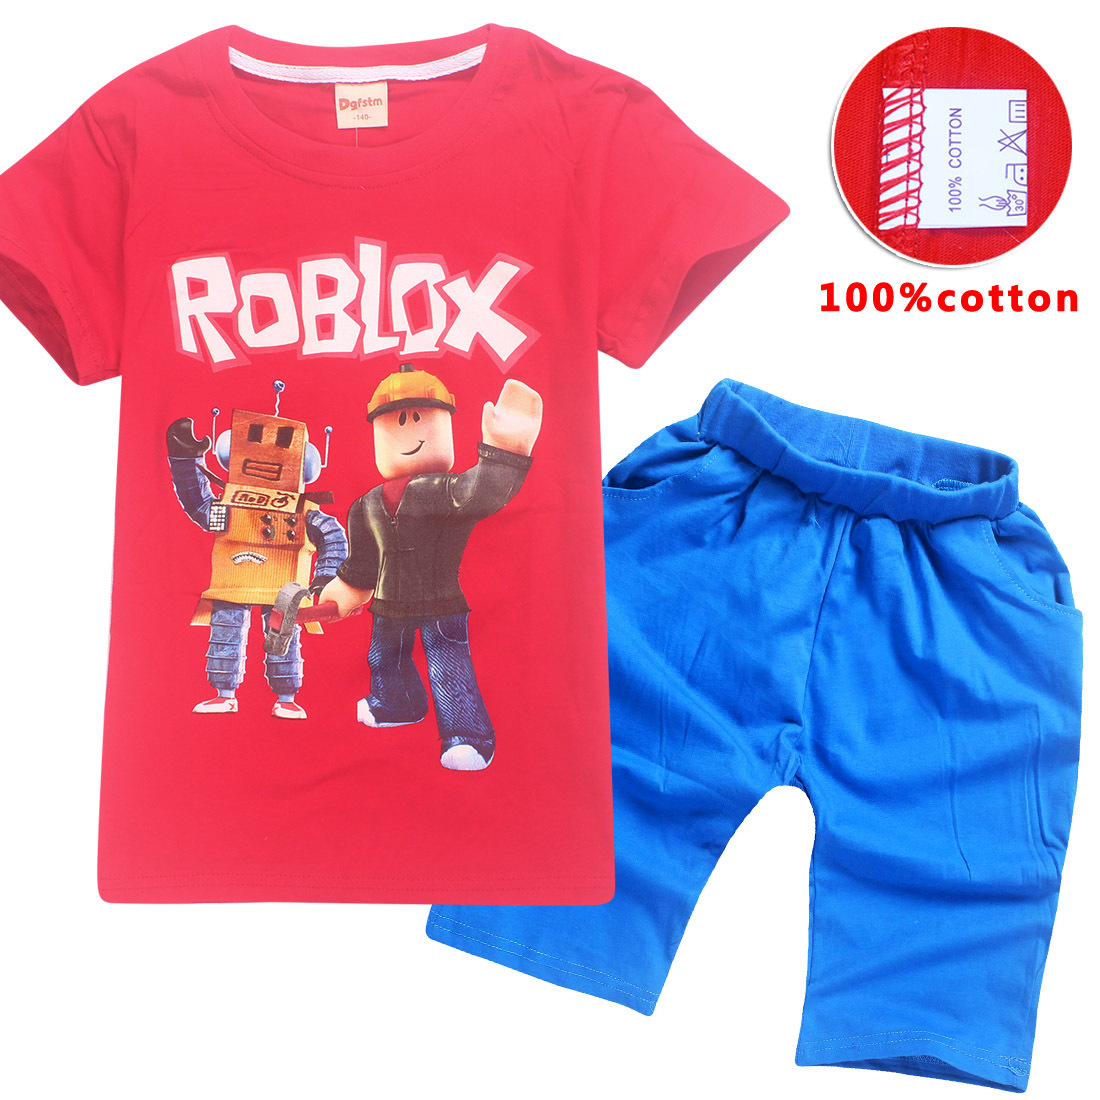 Yls 6 14years Toddler Boys Clothing Set Boutique Roblox T Shirt